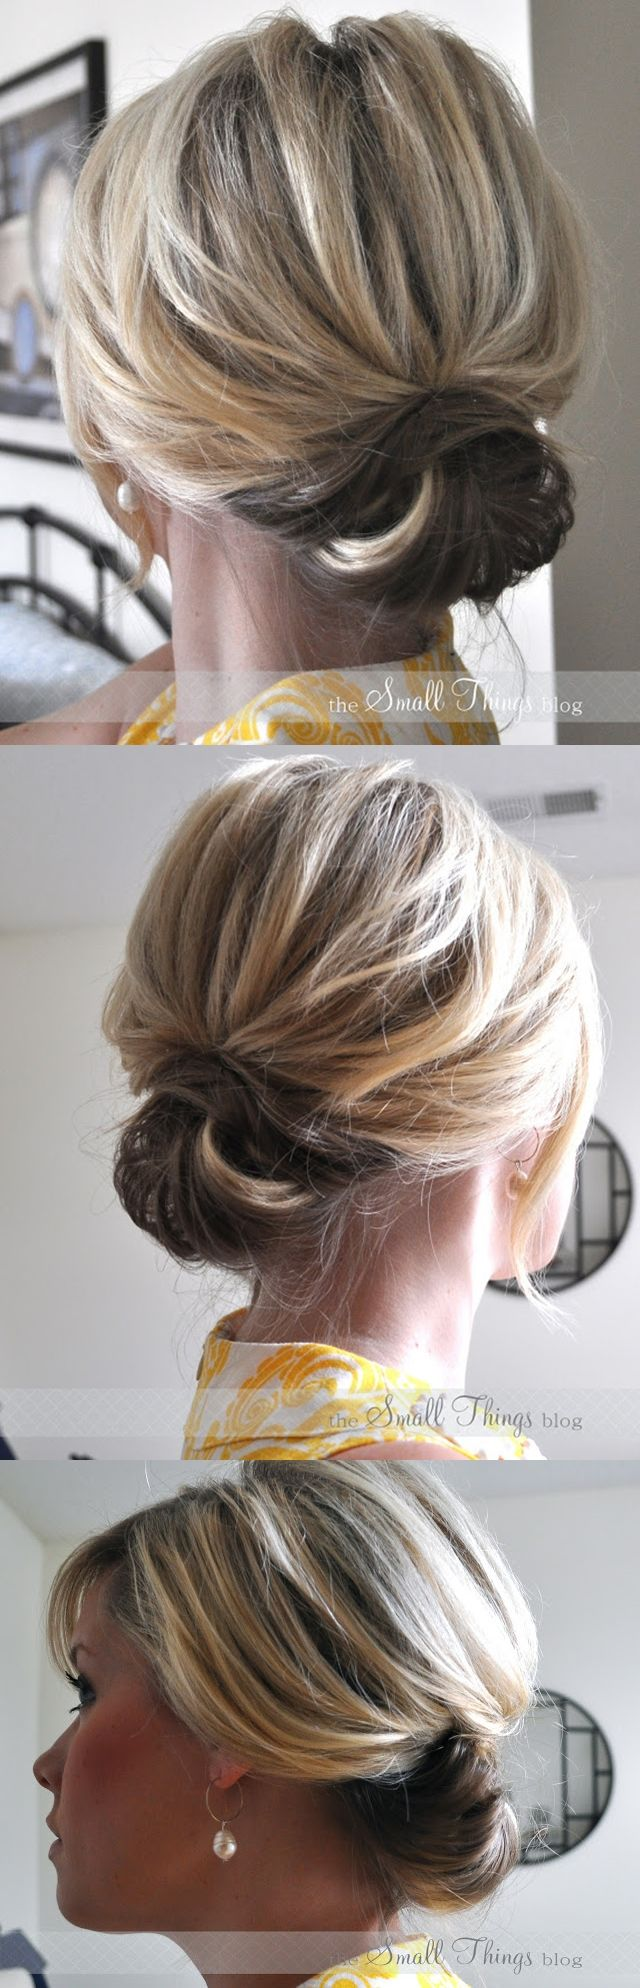 hair up styles for short hair the chic updo diy hairstyles hair 8546 | c760849f7281023e8557810234882519 short hair half up wedding updos for shorter hair